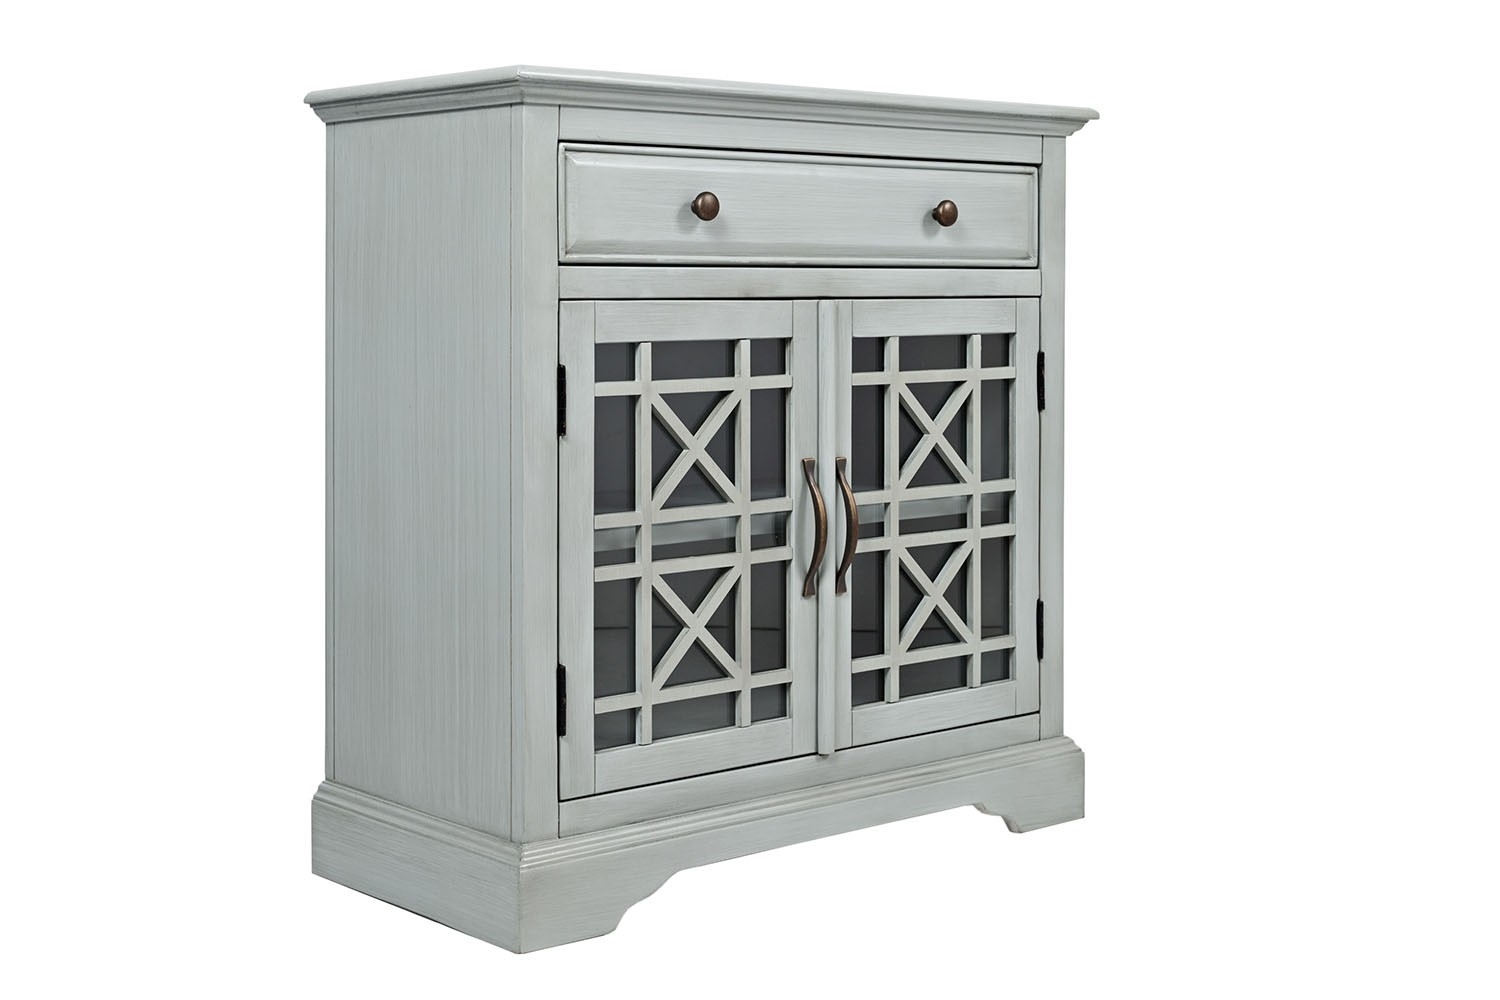 Charmant ... Skyy Gray Small Media Cabinet Media Image 2 ...